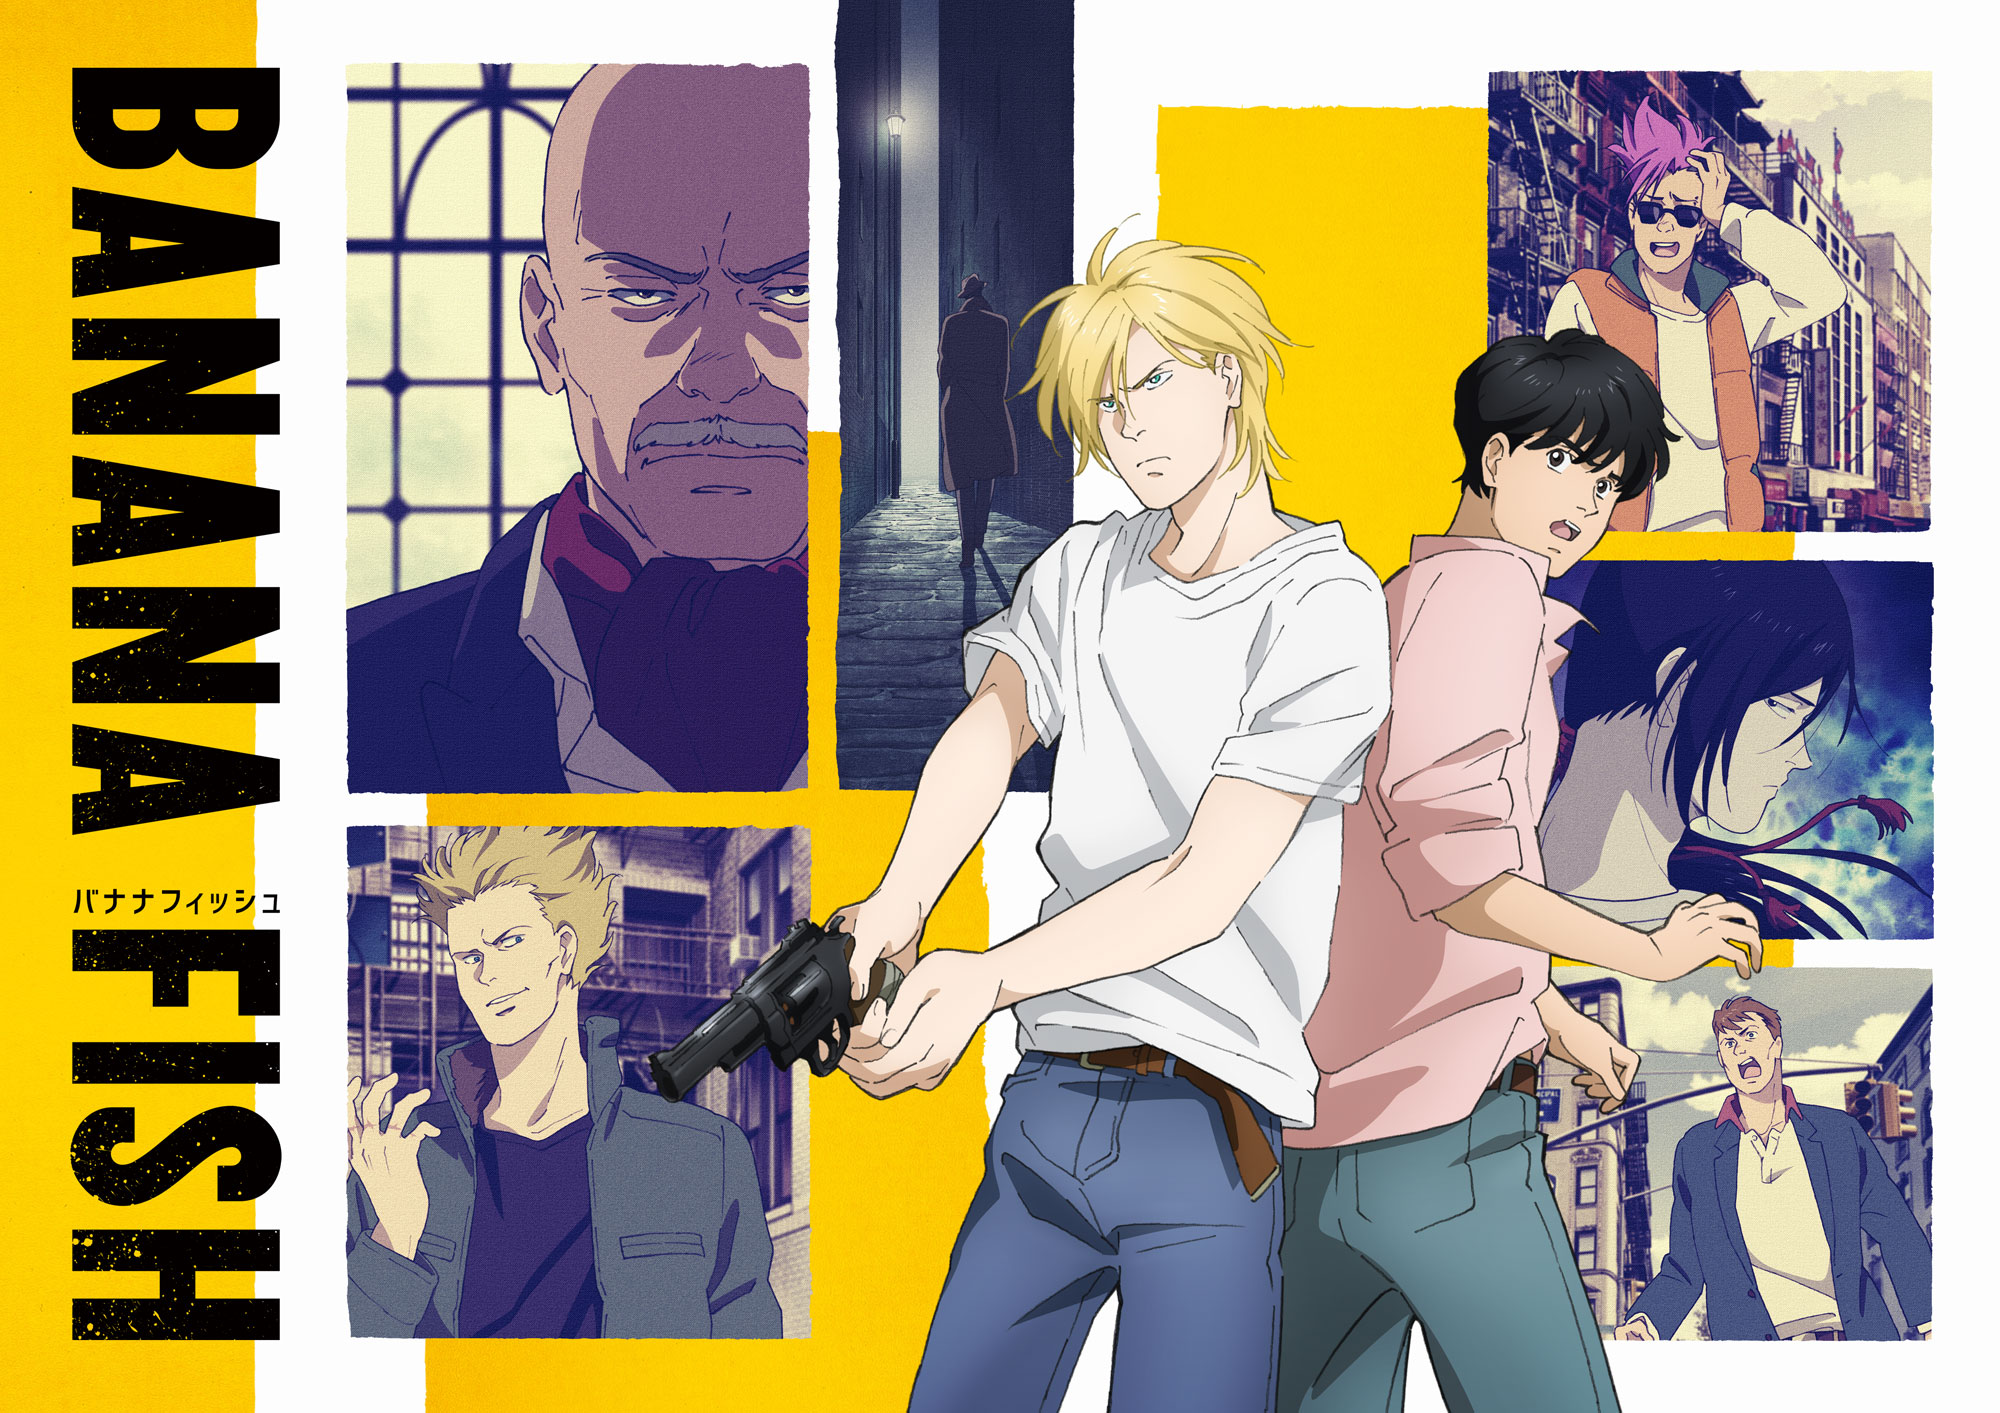 S3r0-Ph1i/The best way to support Banana Fish!